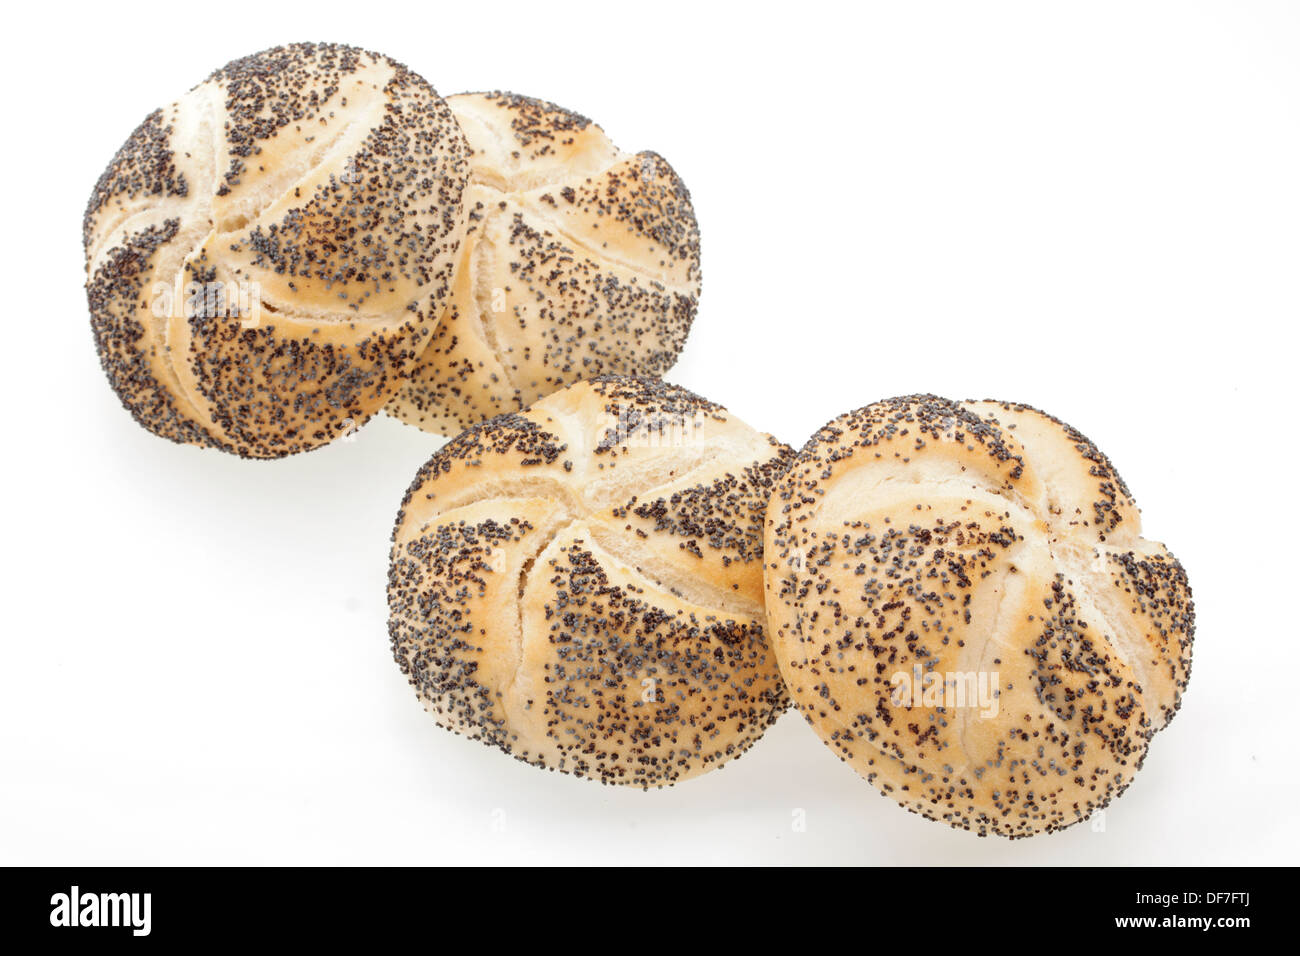 Close up of poppyseed bread rolls on a white background - Stock Image